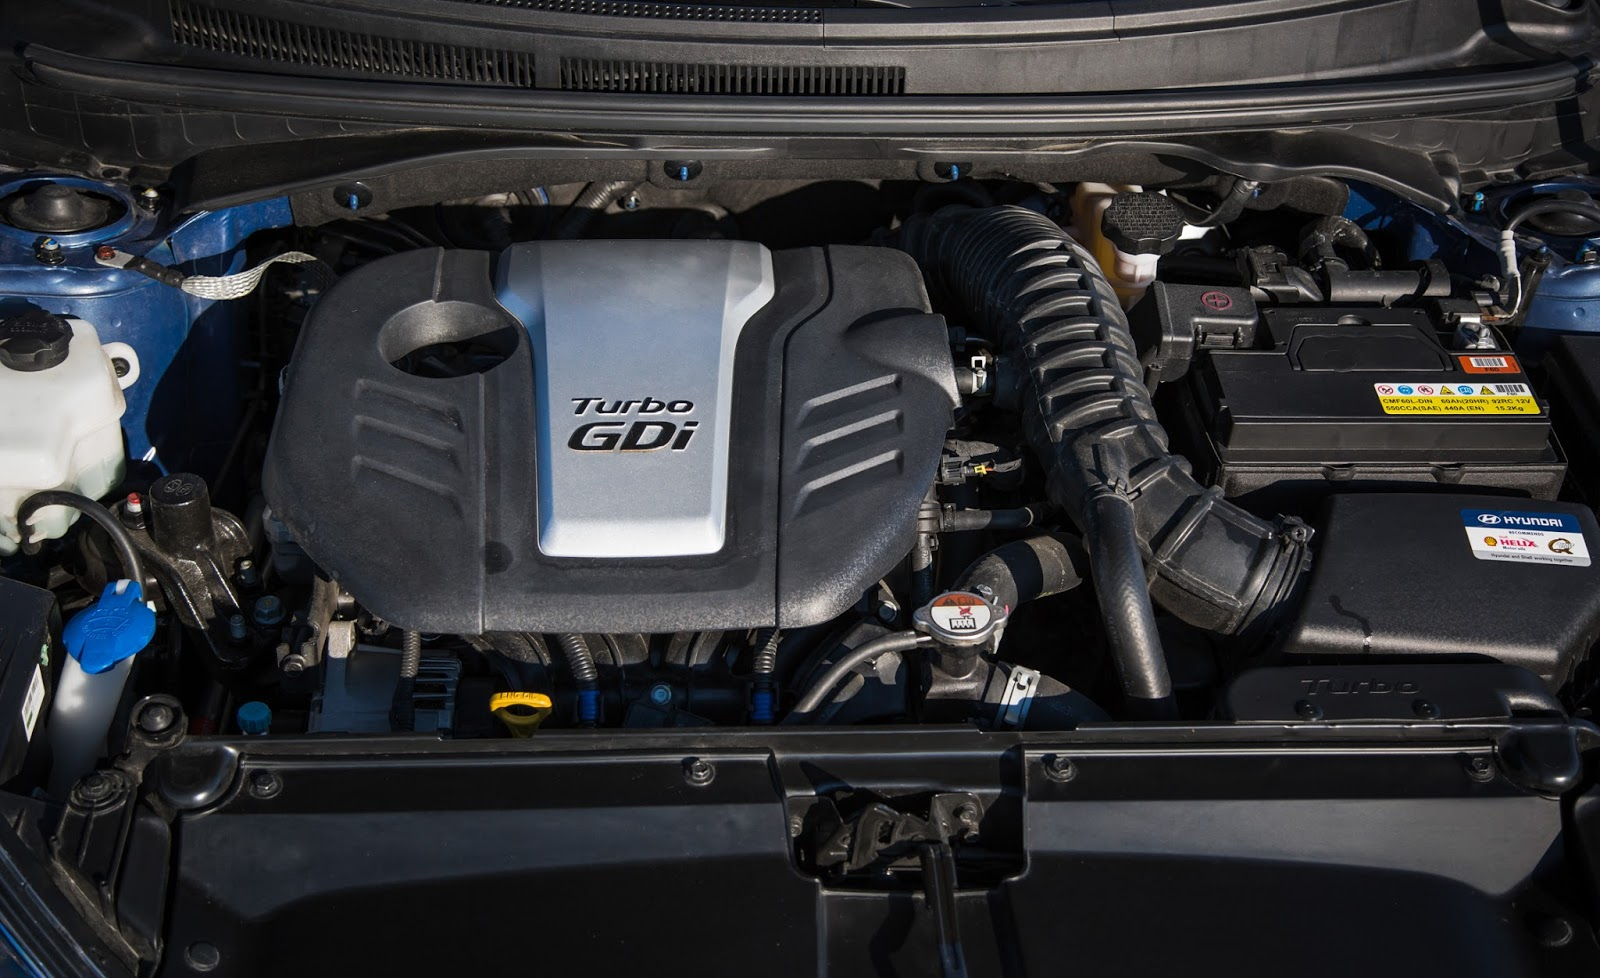 2018 Hyundai i20 engine